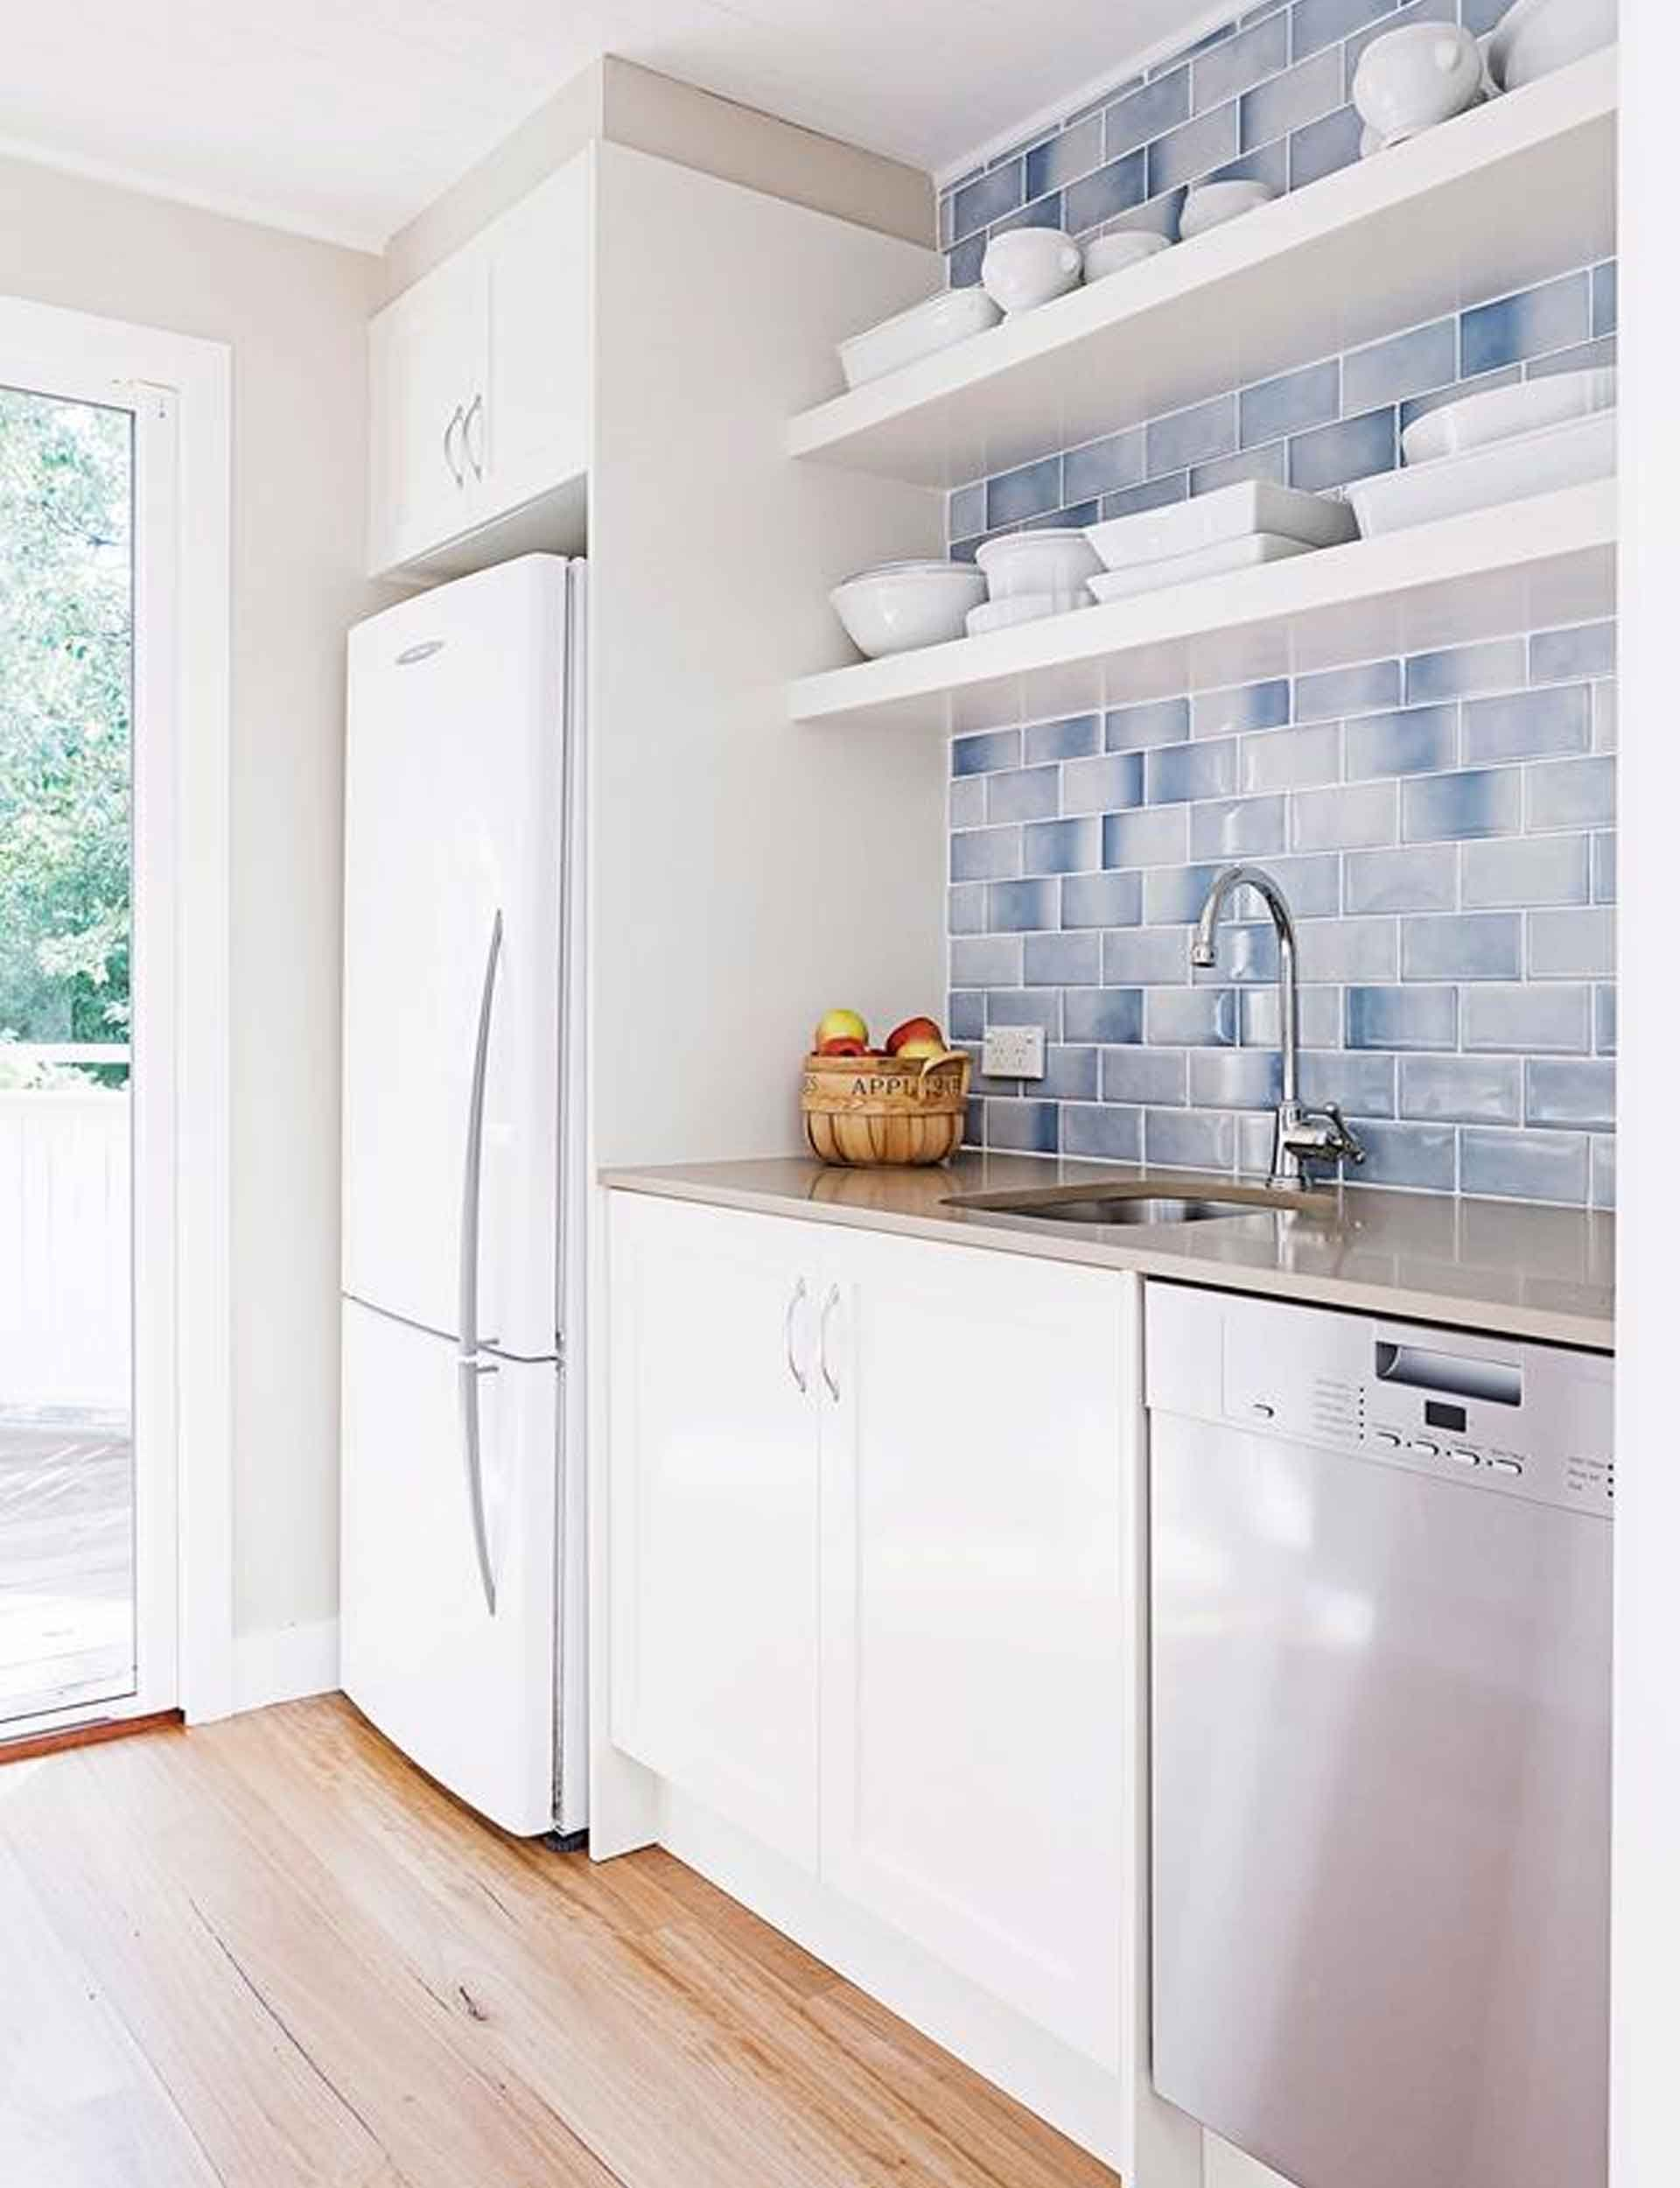 How To Remove Mould And Mildew According To The Experts Mold Remover Kitchen Cabinets In Bathroom Mold In Bathroom